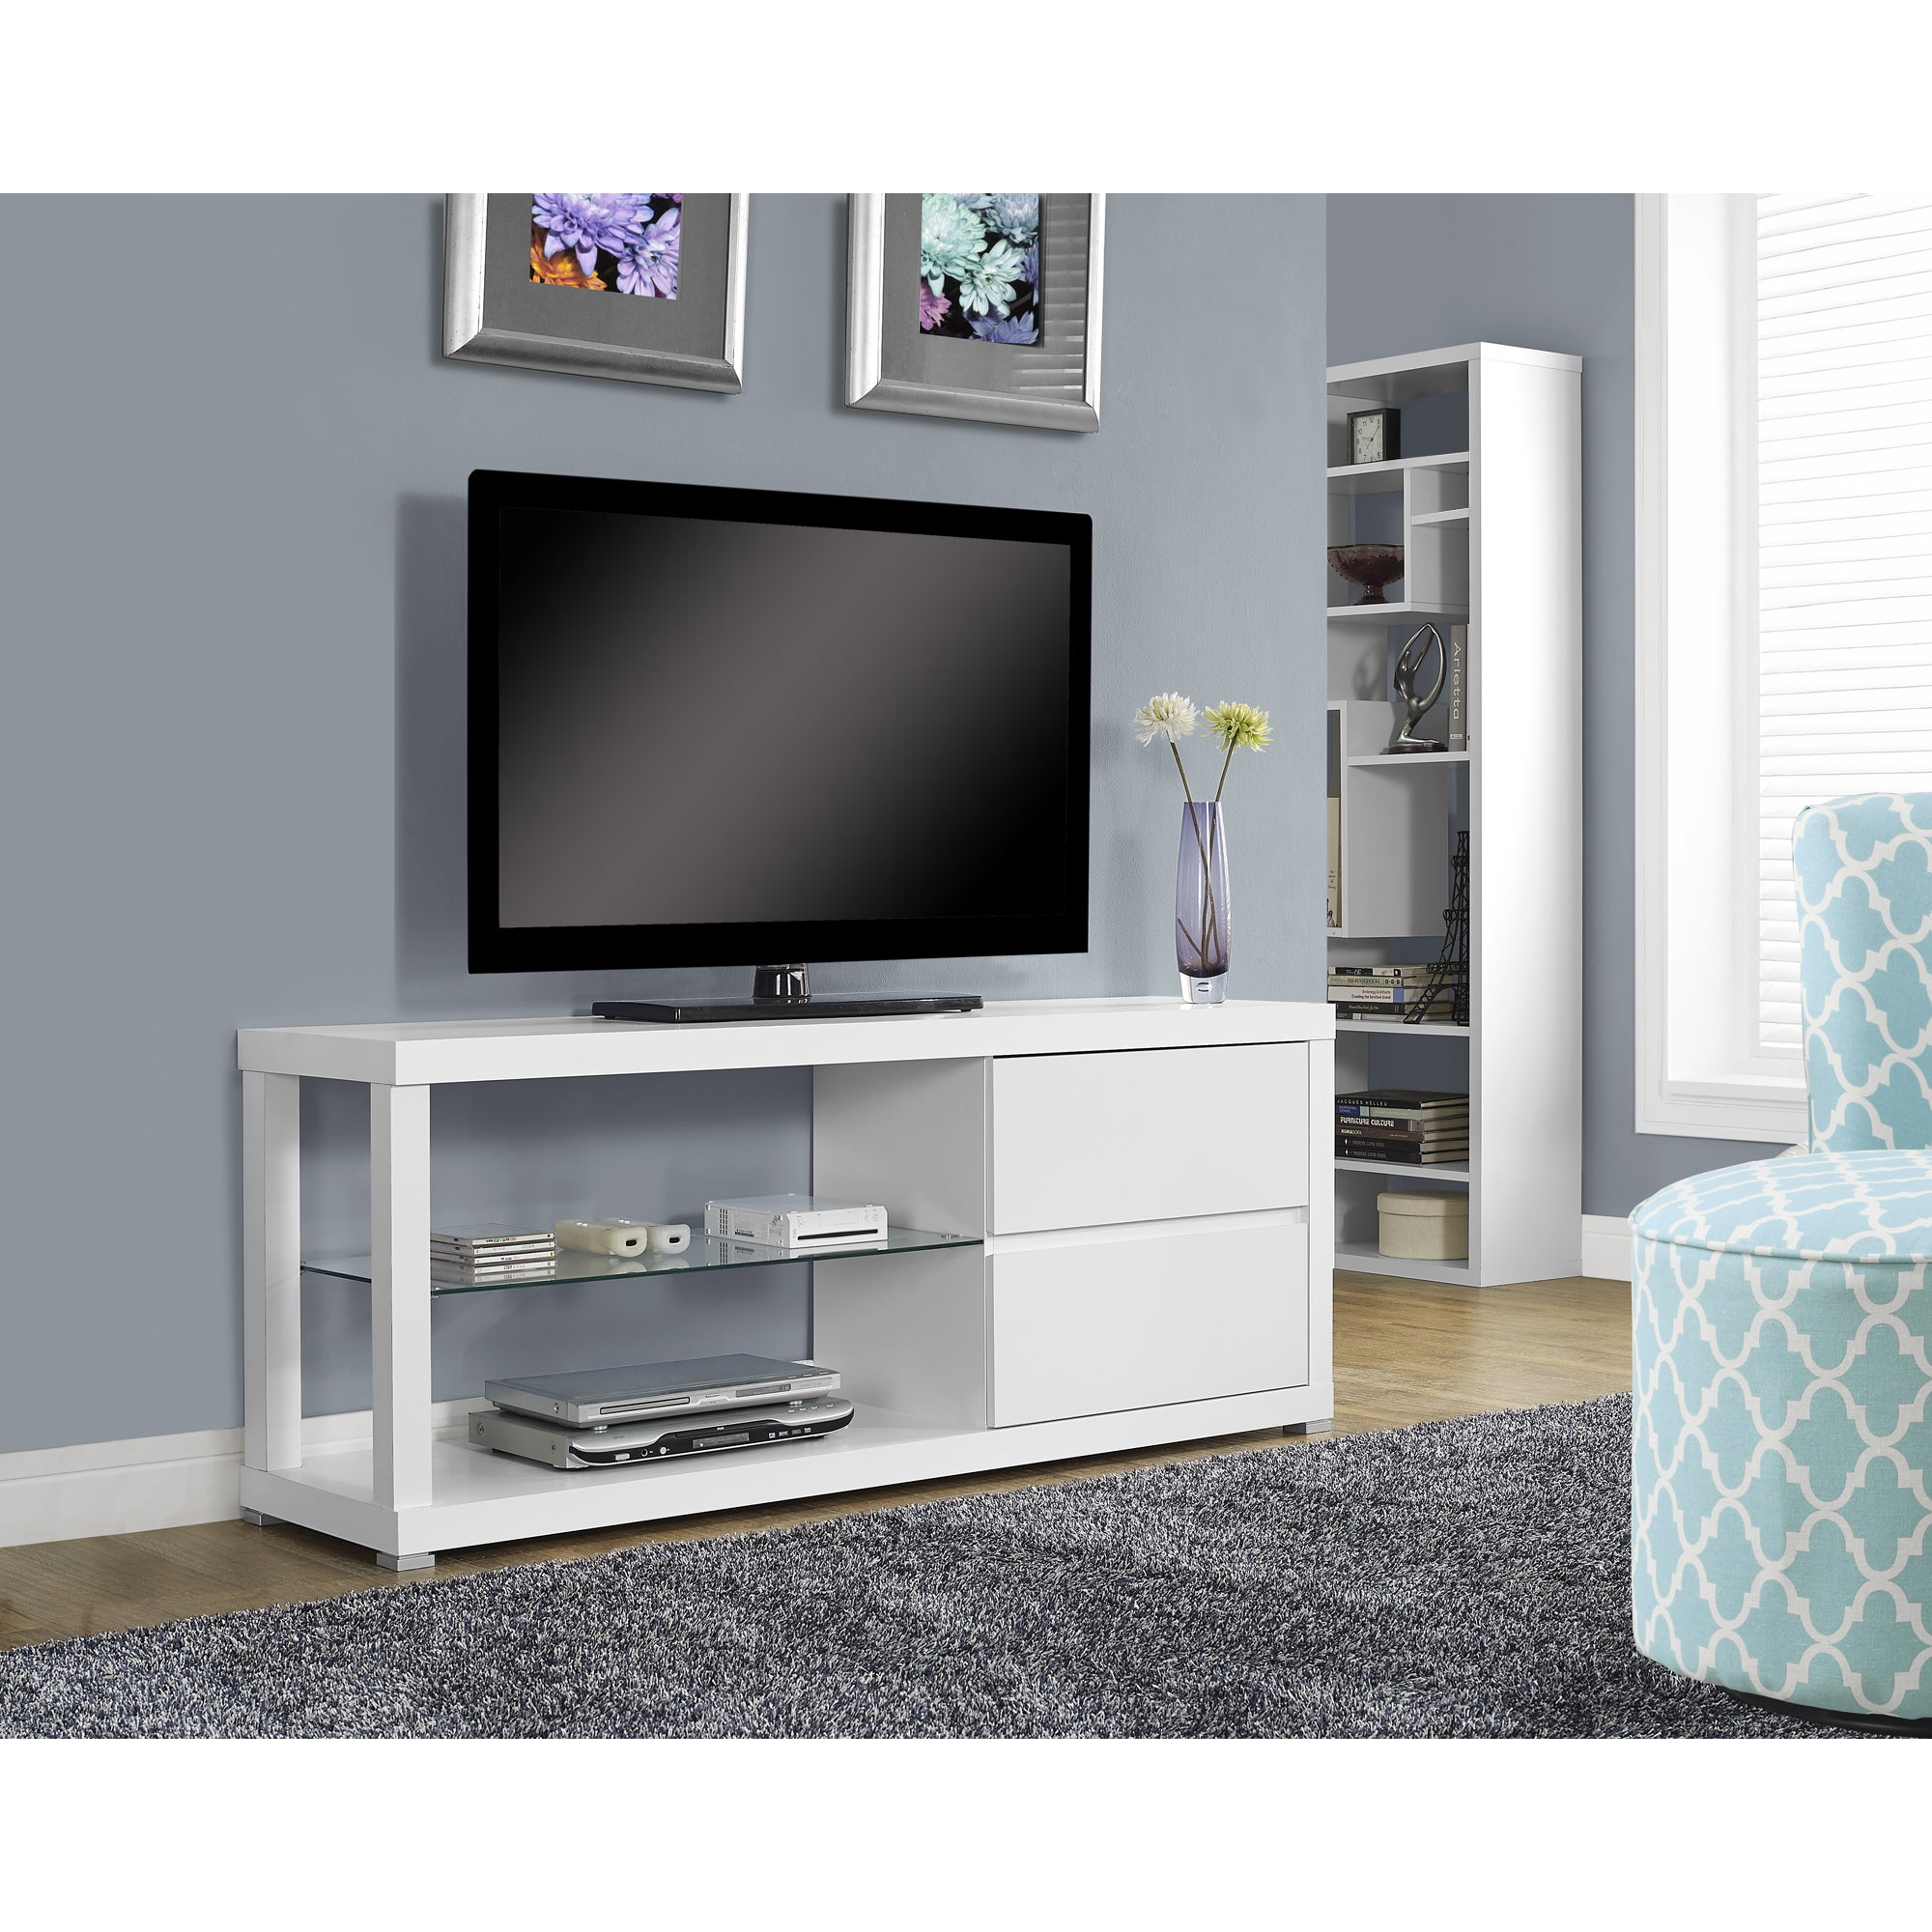 Shop White Hollow core TV Console with Tempered